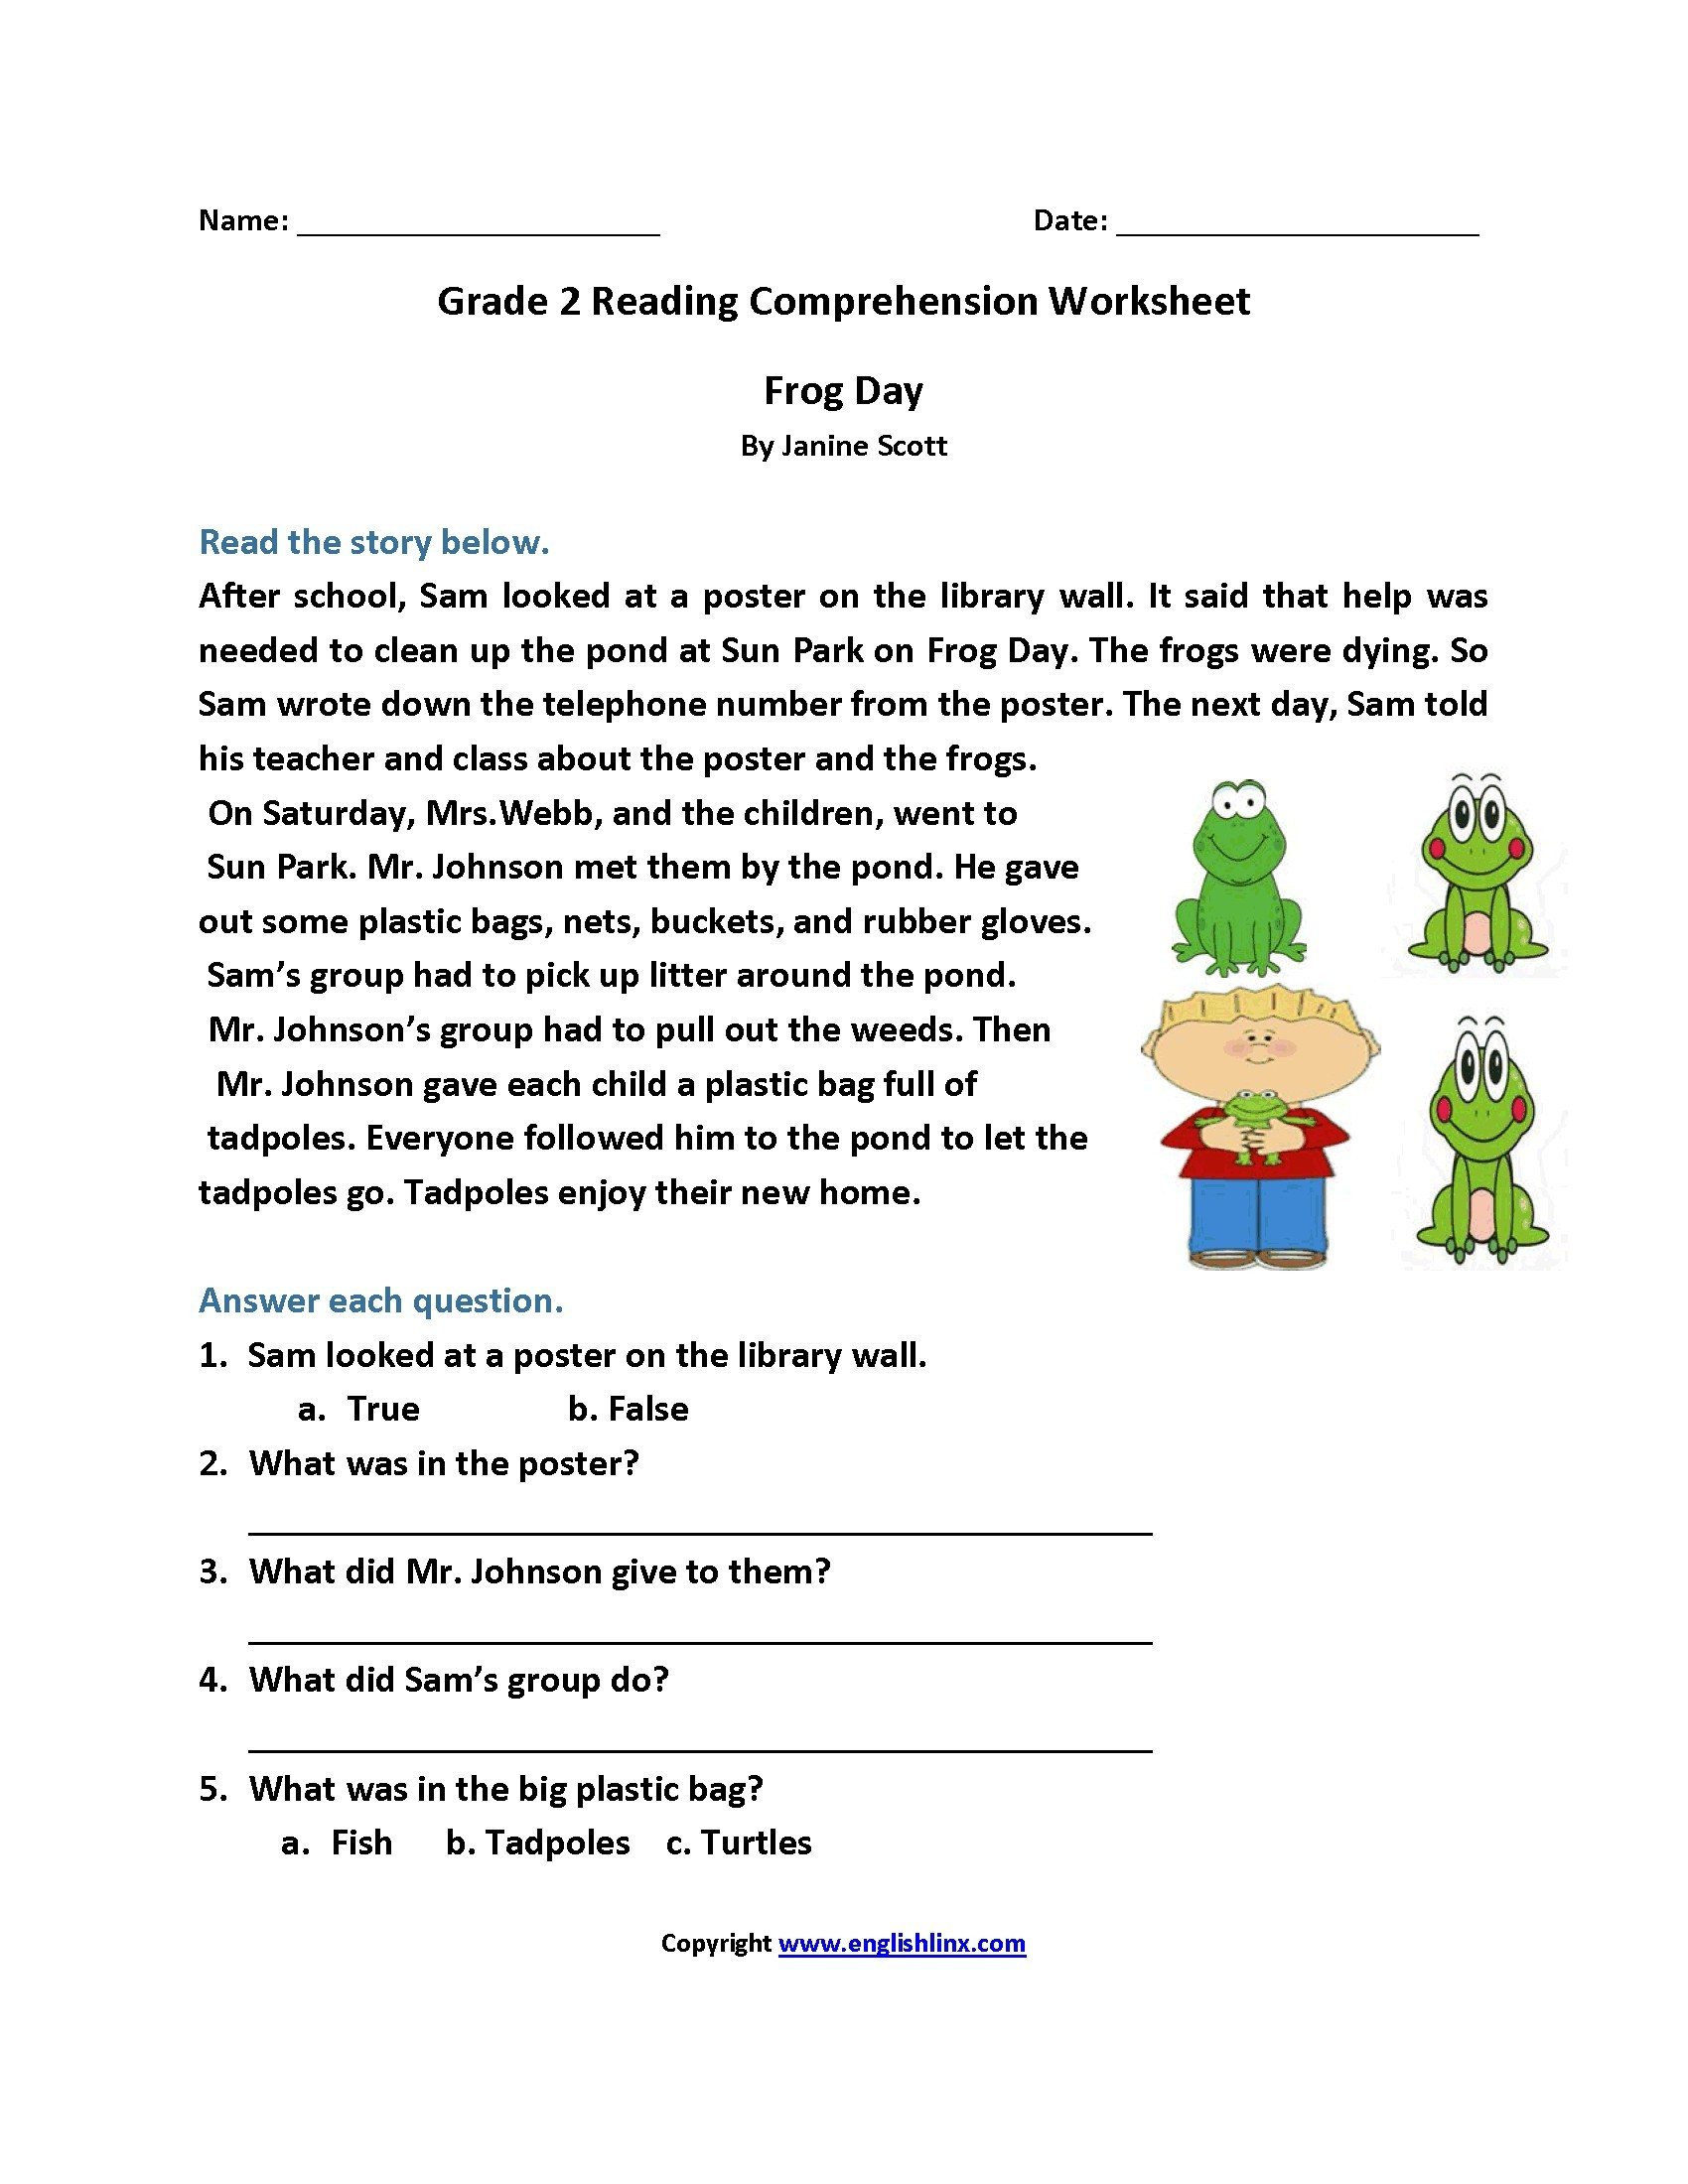 Reading Comprehension Practice Questions - Comprehension Passages | Free Printable Reading Comprehension Worksheets Grade 5